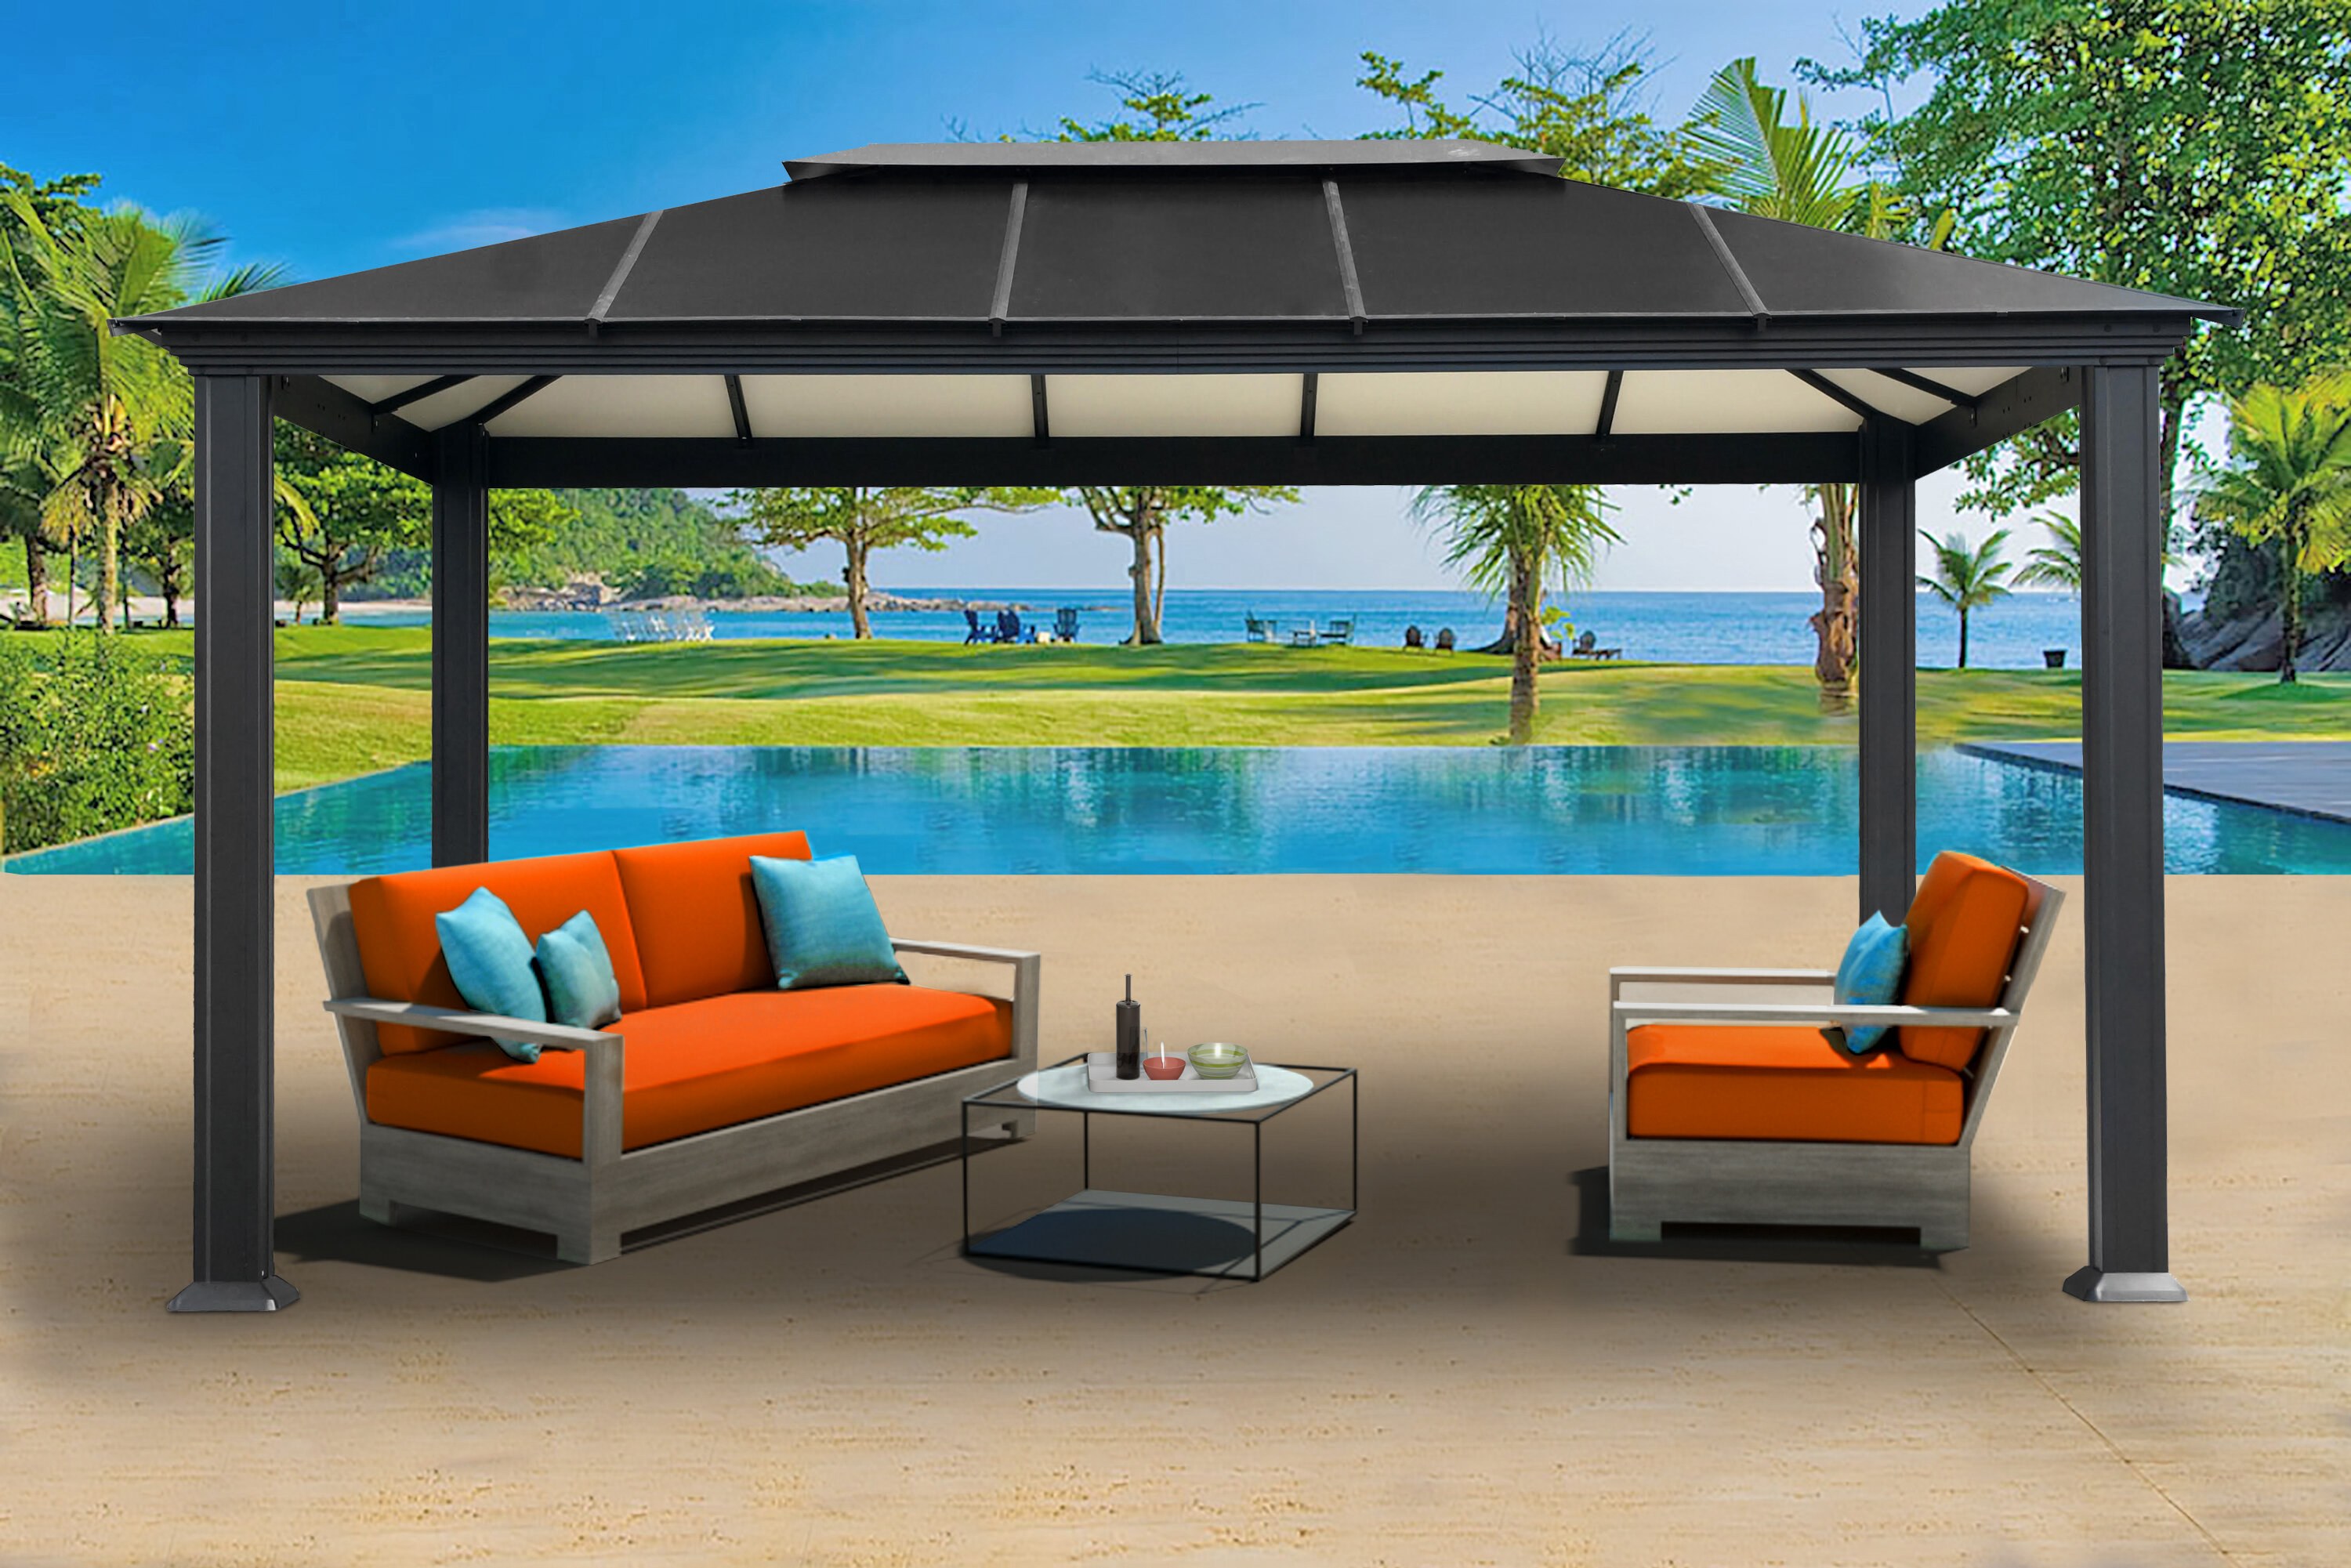 Paragon-Outdoor Newport 10.5 Ft. W x 16 Ft. D Aluminum Patio Gazebo on small deck with gazebo, small garden pavilion, backyard fire pit with gazebo, small outdoor living area ideas, small kitchen design ideas, small outdoor living spaces ideas, small backyard makeovers, small patio gazebo ideas designs, landscaping ideas around a gazebo, small garden ponds ideas patio, small patio gazebo in backyard, small balcony garden ideas, circle with small back yard gazebo, backyards decorating ideas for gazebo, garden gazebo, small front yard landscaping ideas, shabby chic decorating ideas gazebo,